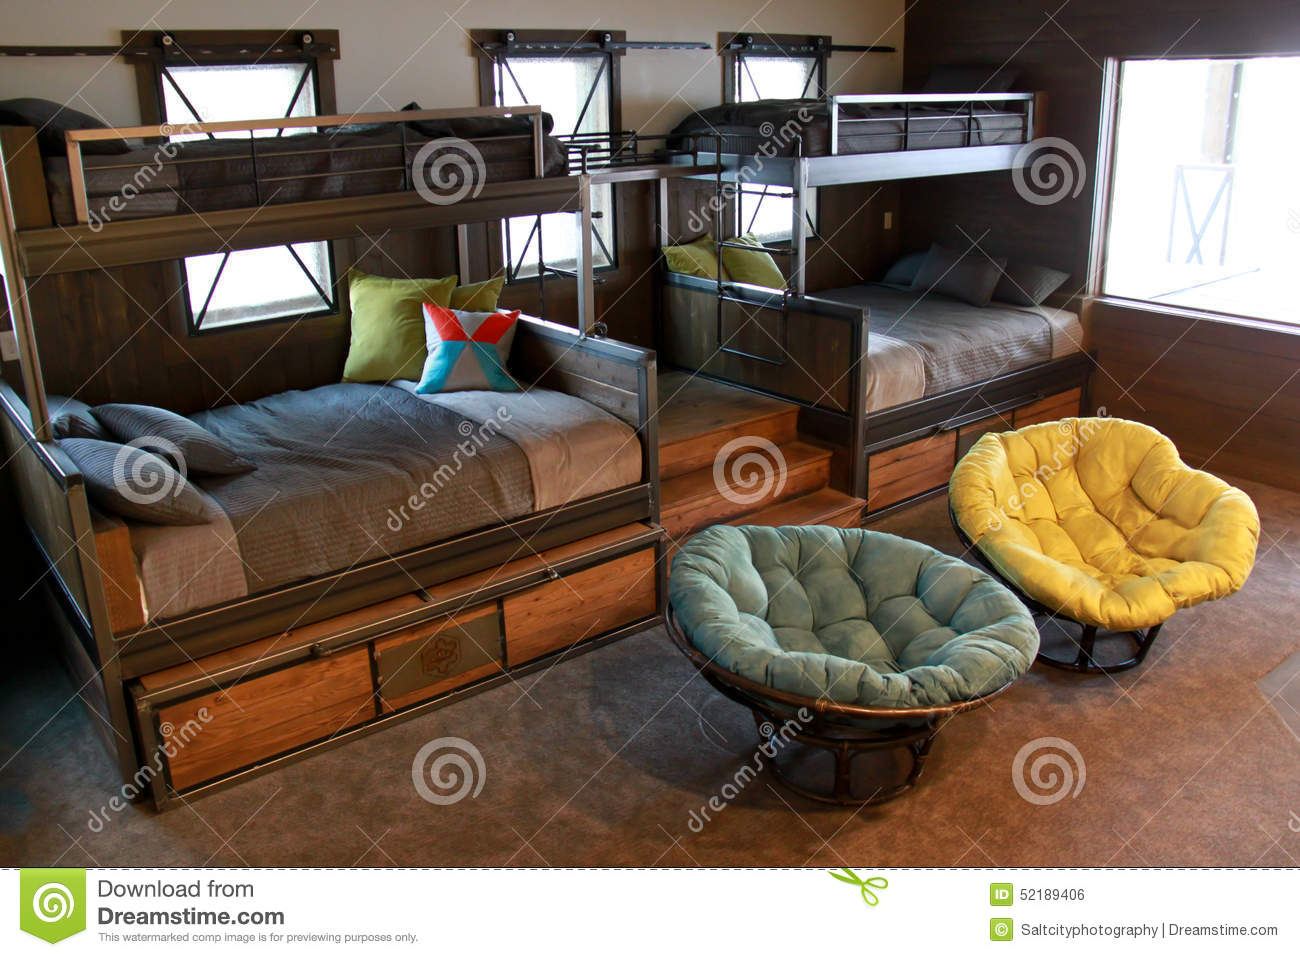 huge discount f91dc 18597 Bunk Beds stock photo. Image of living, color, image - 52189406